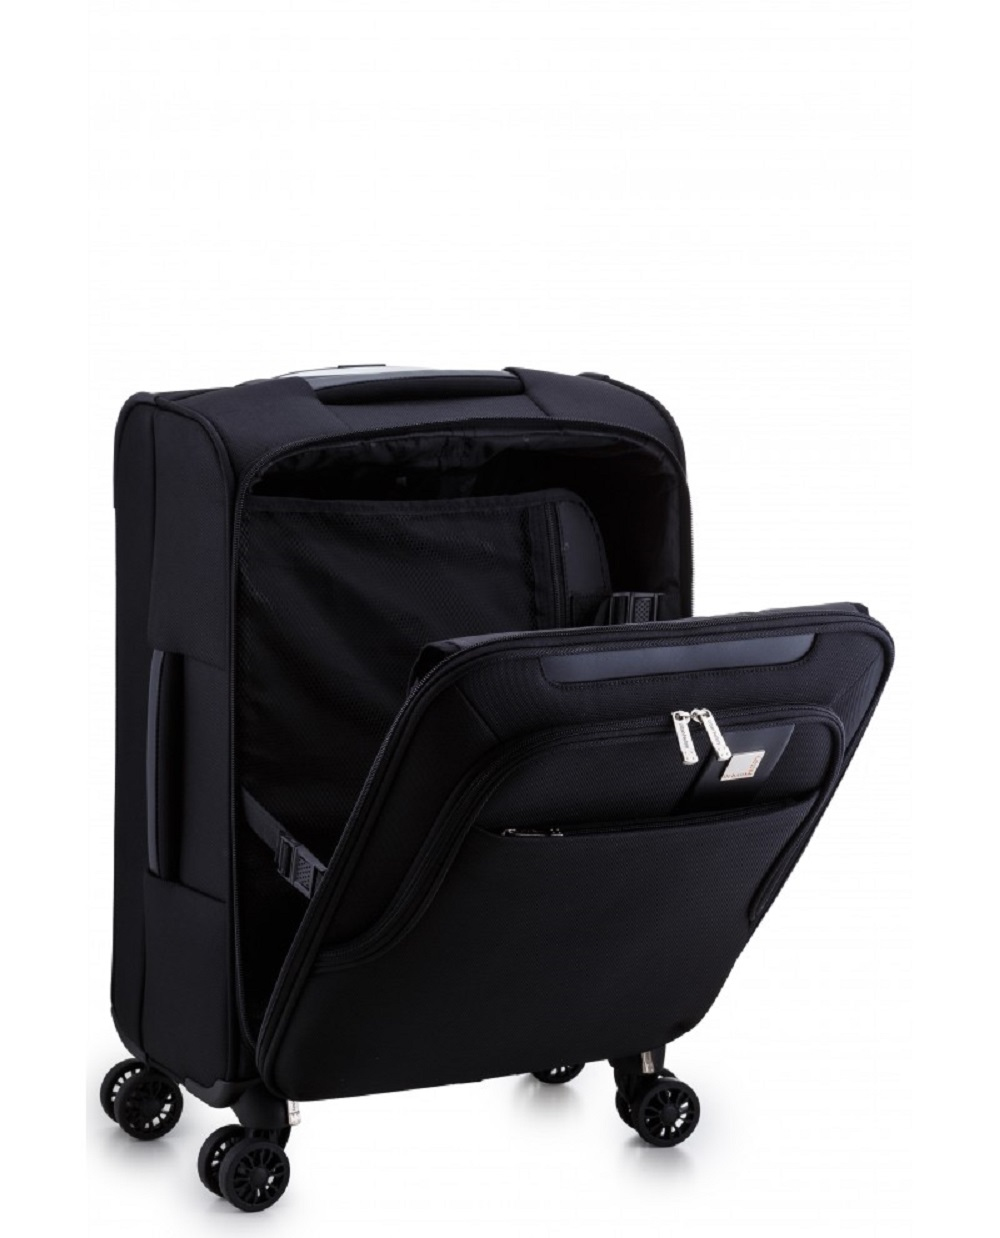 Urban Factory - Accessories      City Classic Laptop Trolley         15.6in Black                        Ctt01uf-v3